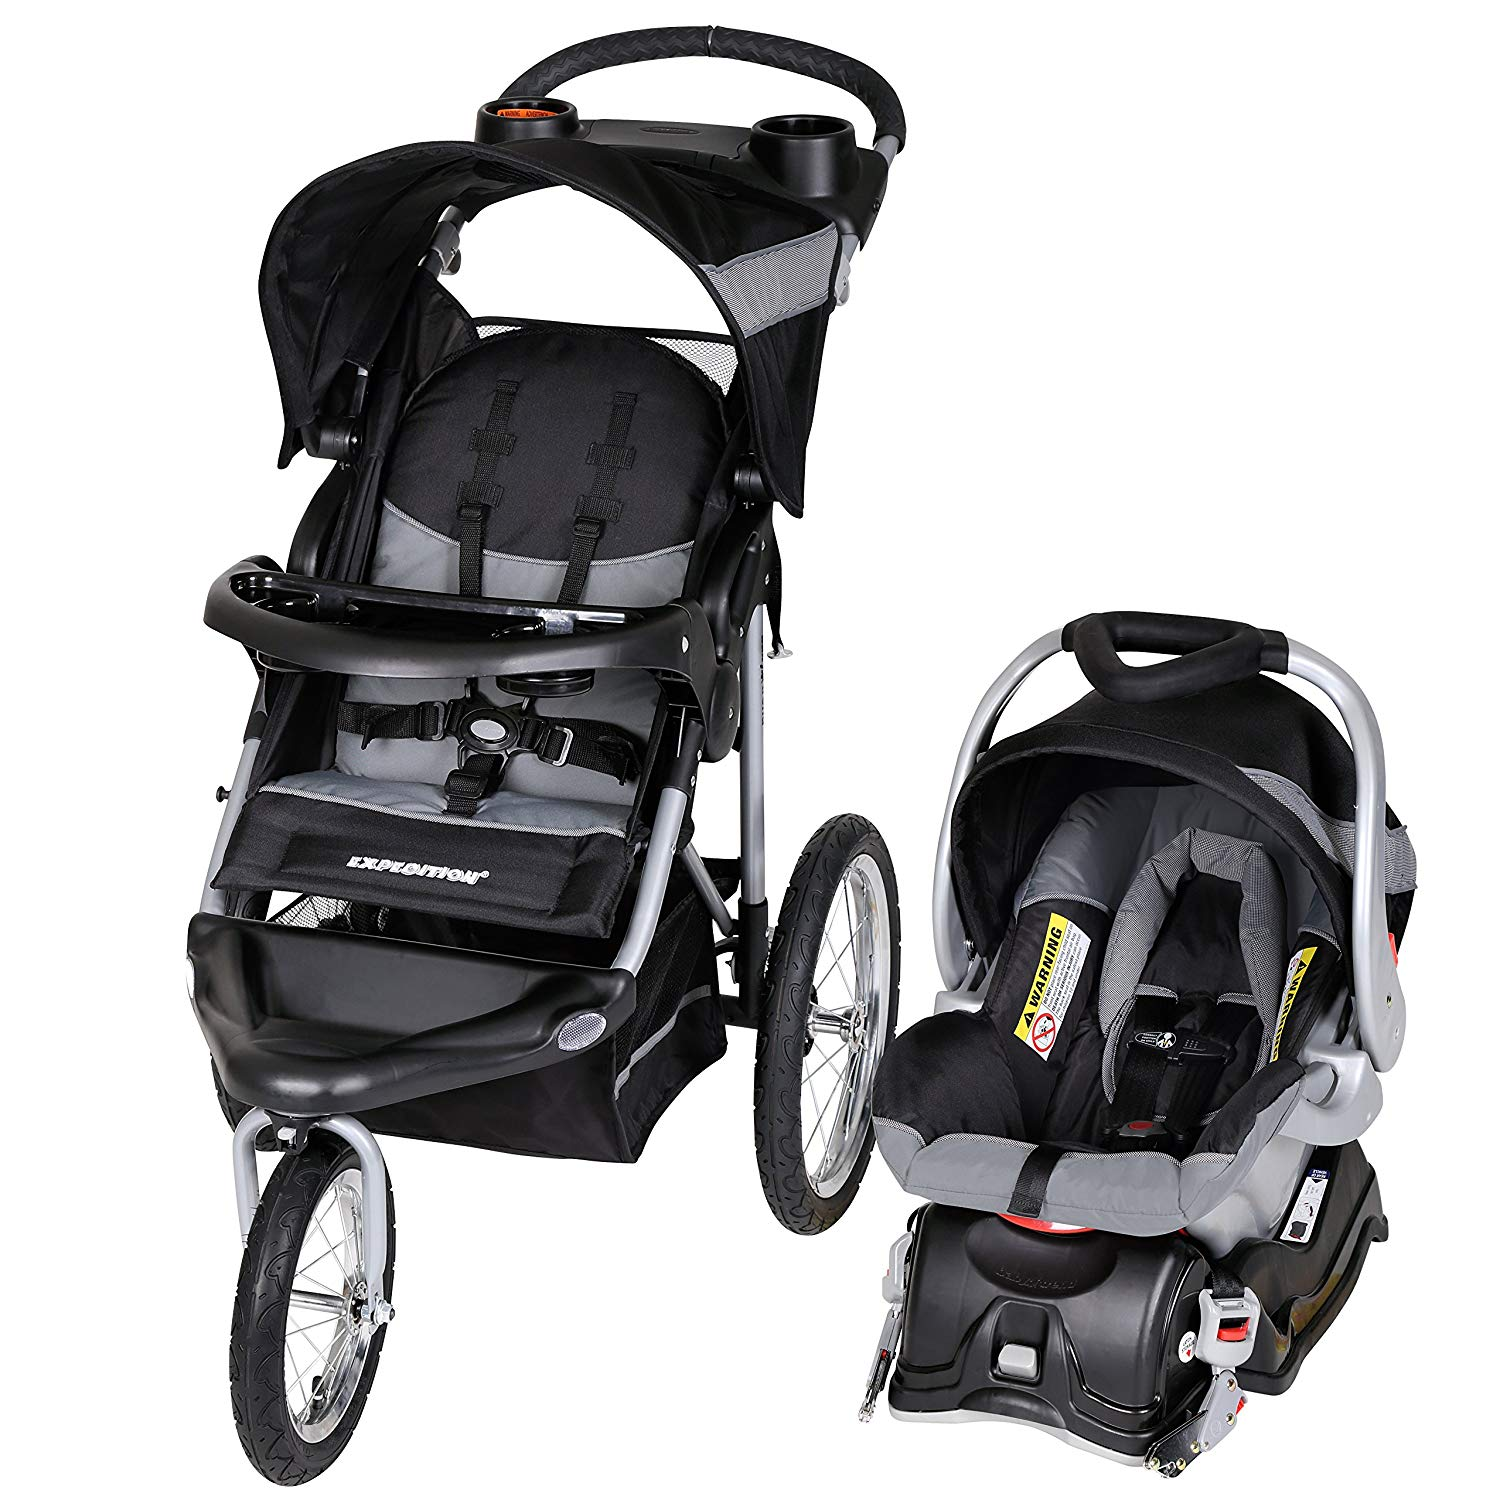 Review of Baby Trend Expedition Jogger Travel System, Millennium White